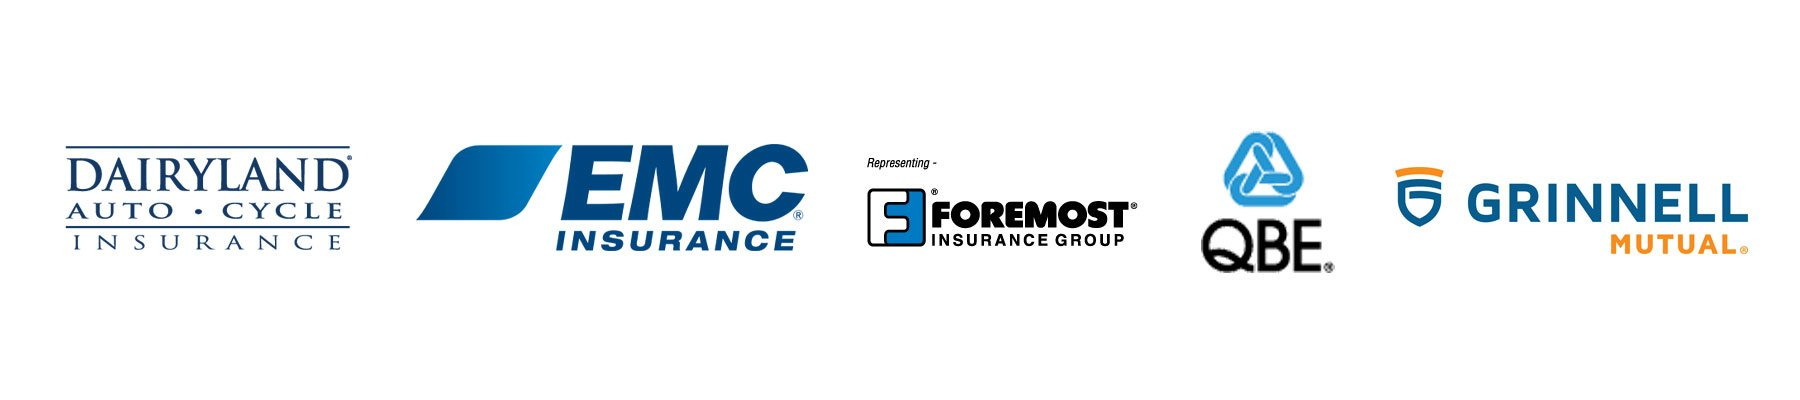 Diaryland Insurance, EMC Insurance, Foremost Insurance Group, QBE Insurance, Grinnell Mutual Insurance